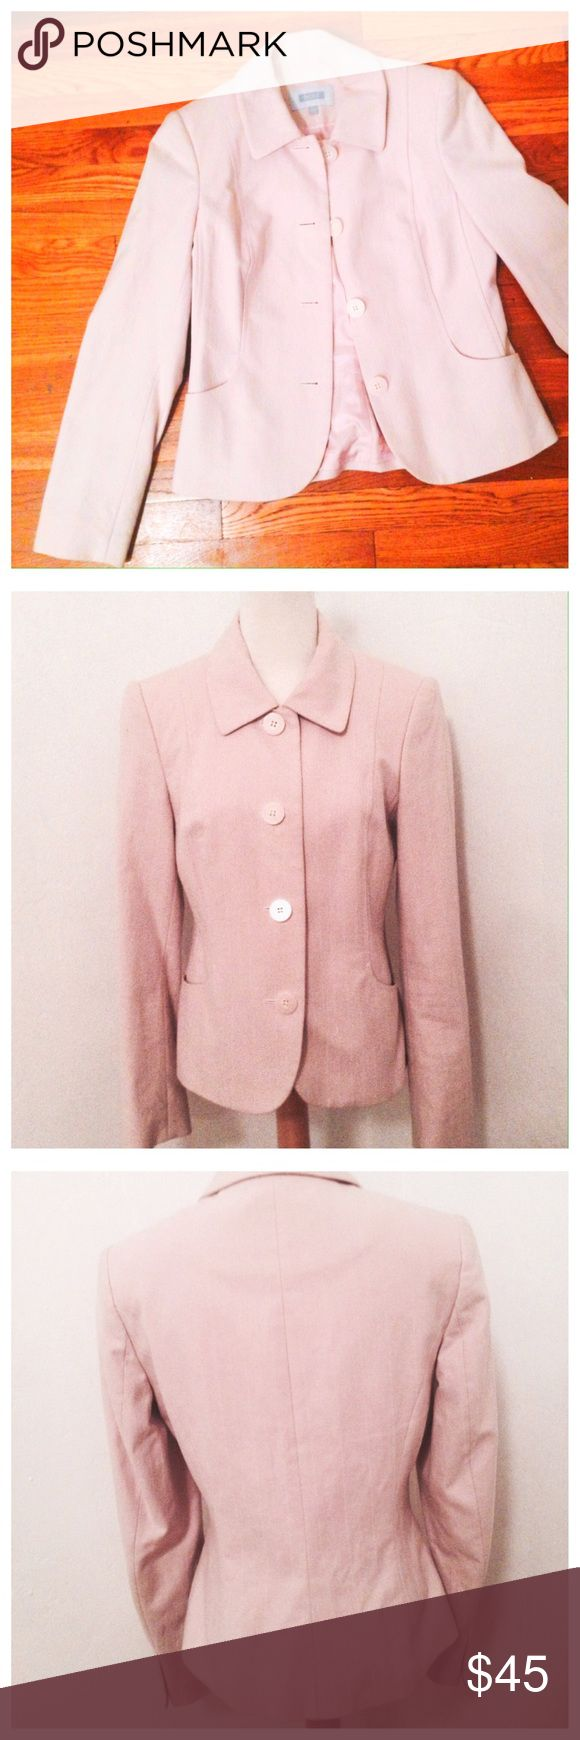 Next U.K. Pink Pinstriped Blazer Size 6 Straight from the U.K! Gorgeous and very well made light pink with pinstripes blazer. Super spring jacket! 100% cotton. 4 button down. 2 pockets. Sits at waist. Dry cleaned but has unnoticeable discoloration under the arm pits. Has a small mark on the inside lining that doesn't go through to the rest of the jacket. Please see last 2 photos. Other than that this is clean and in great condition. Size is 10 UK which is Size 6 USA. next Jackets & Coats…